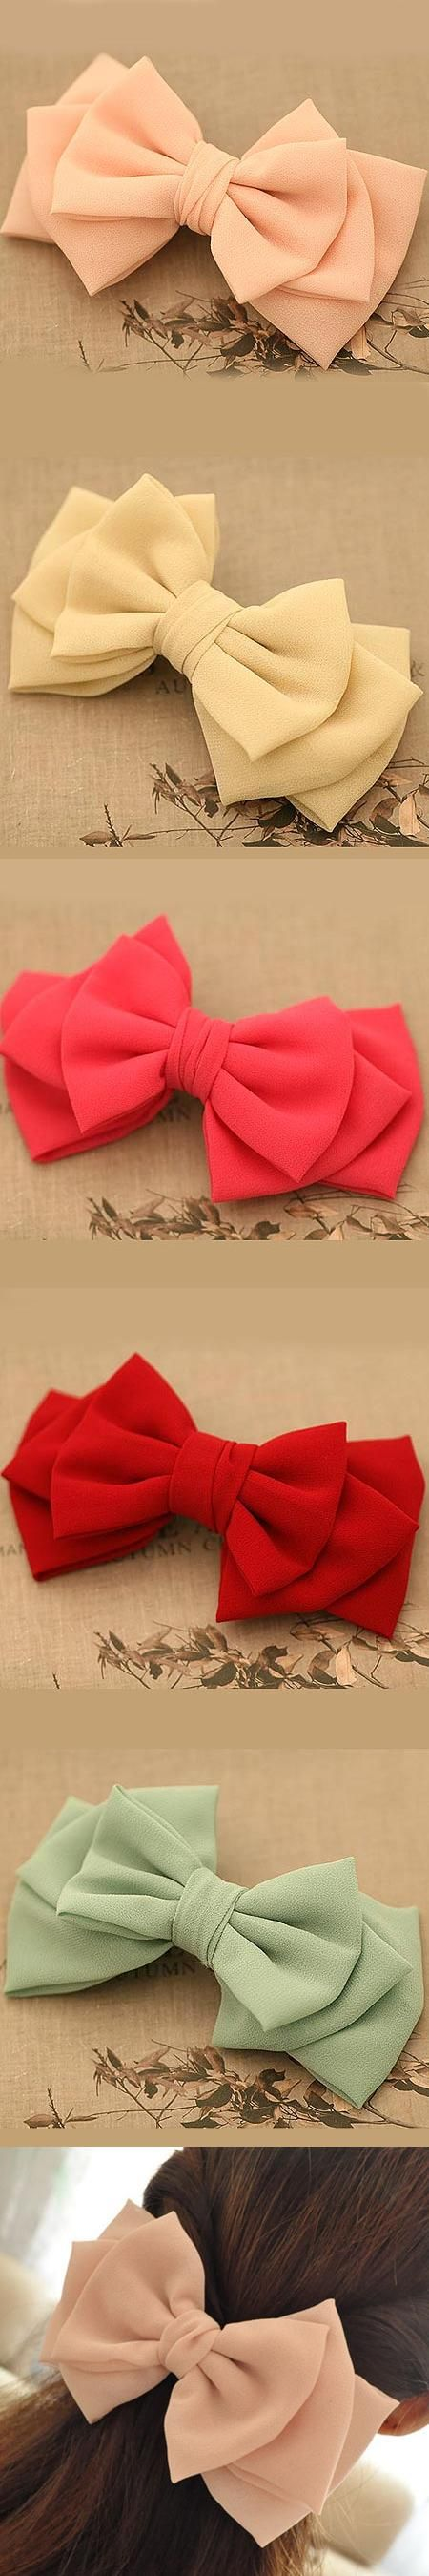 5.1in Large Hair Bows For Girls Solid Color Chiffon Three Layers Irregular Bow Hair Clips Barrettes Hair Accessories For Women